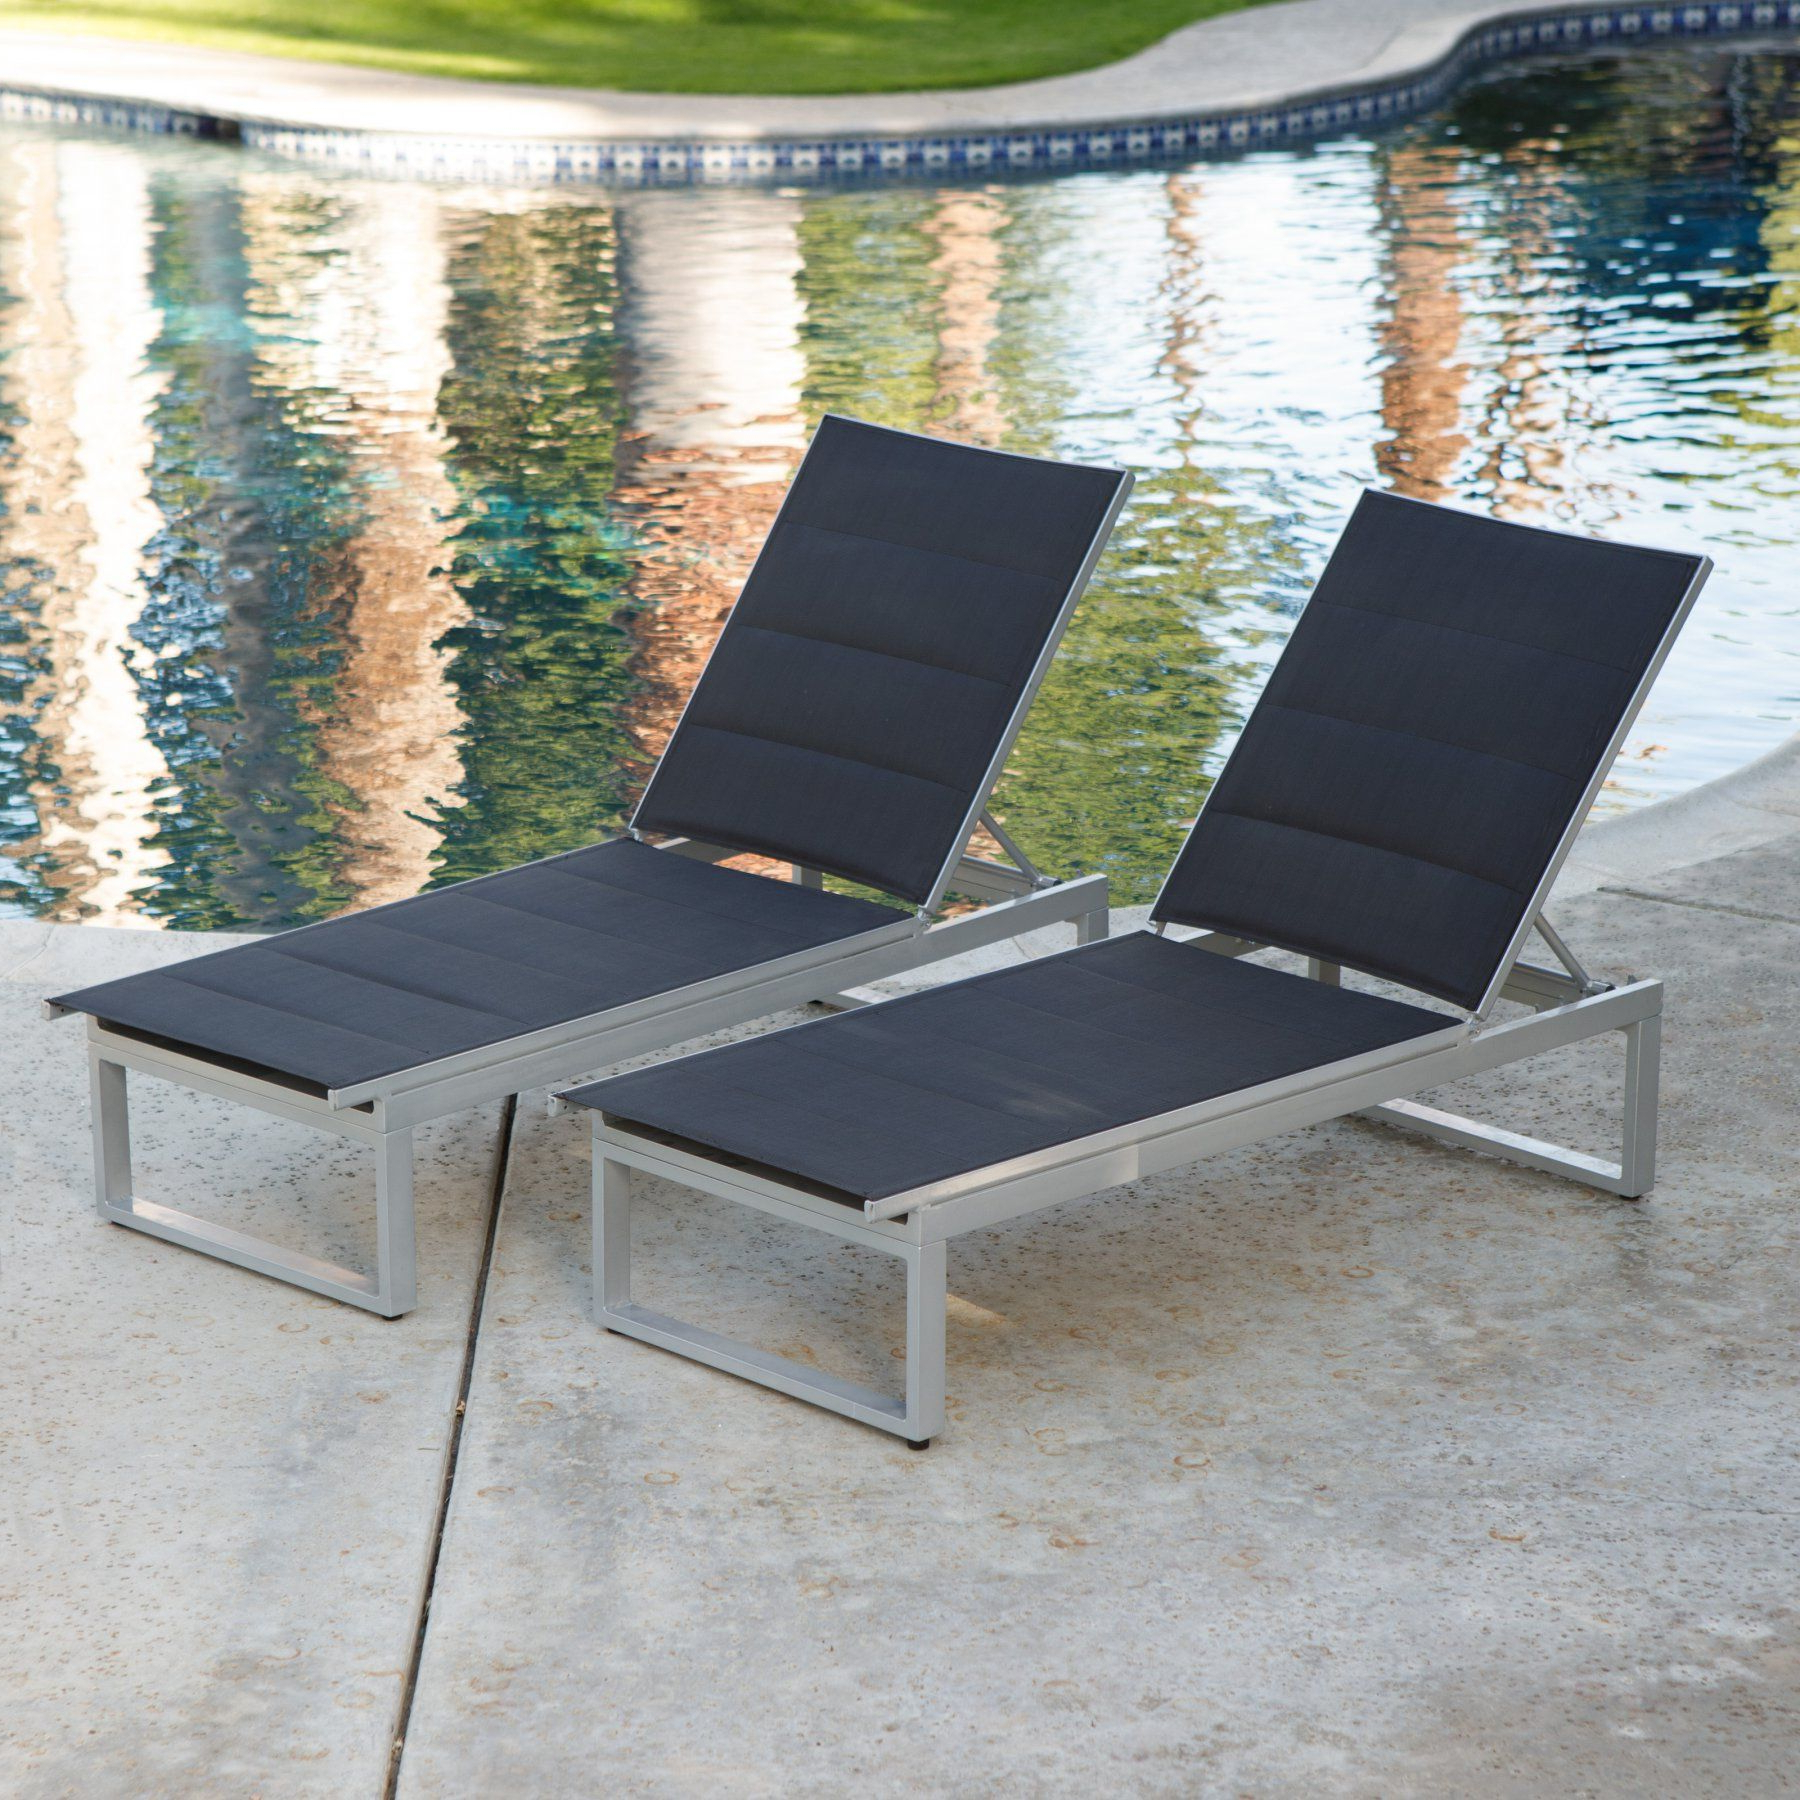 Preferred Myers Outdoor Aluminum Mesh Chaise Lounges For Coral Coast Southwick Padded Sling Outdoor Chaise Lounge (View 9 of 25)